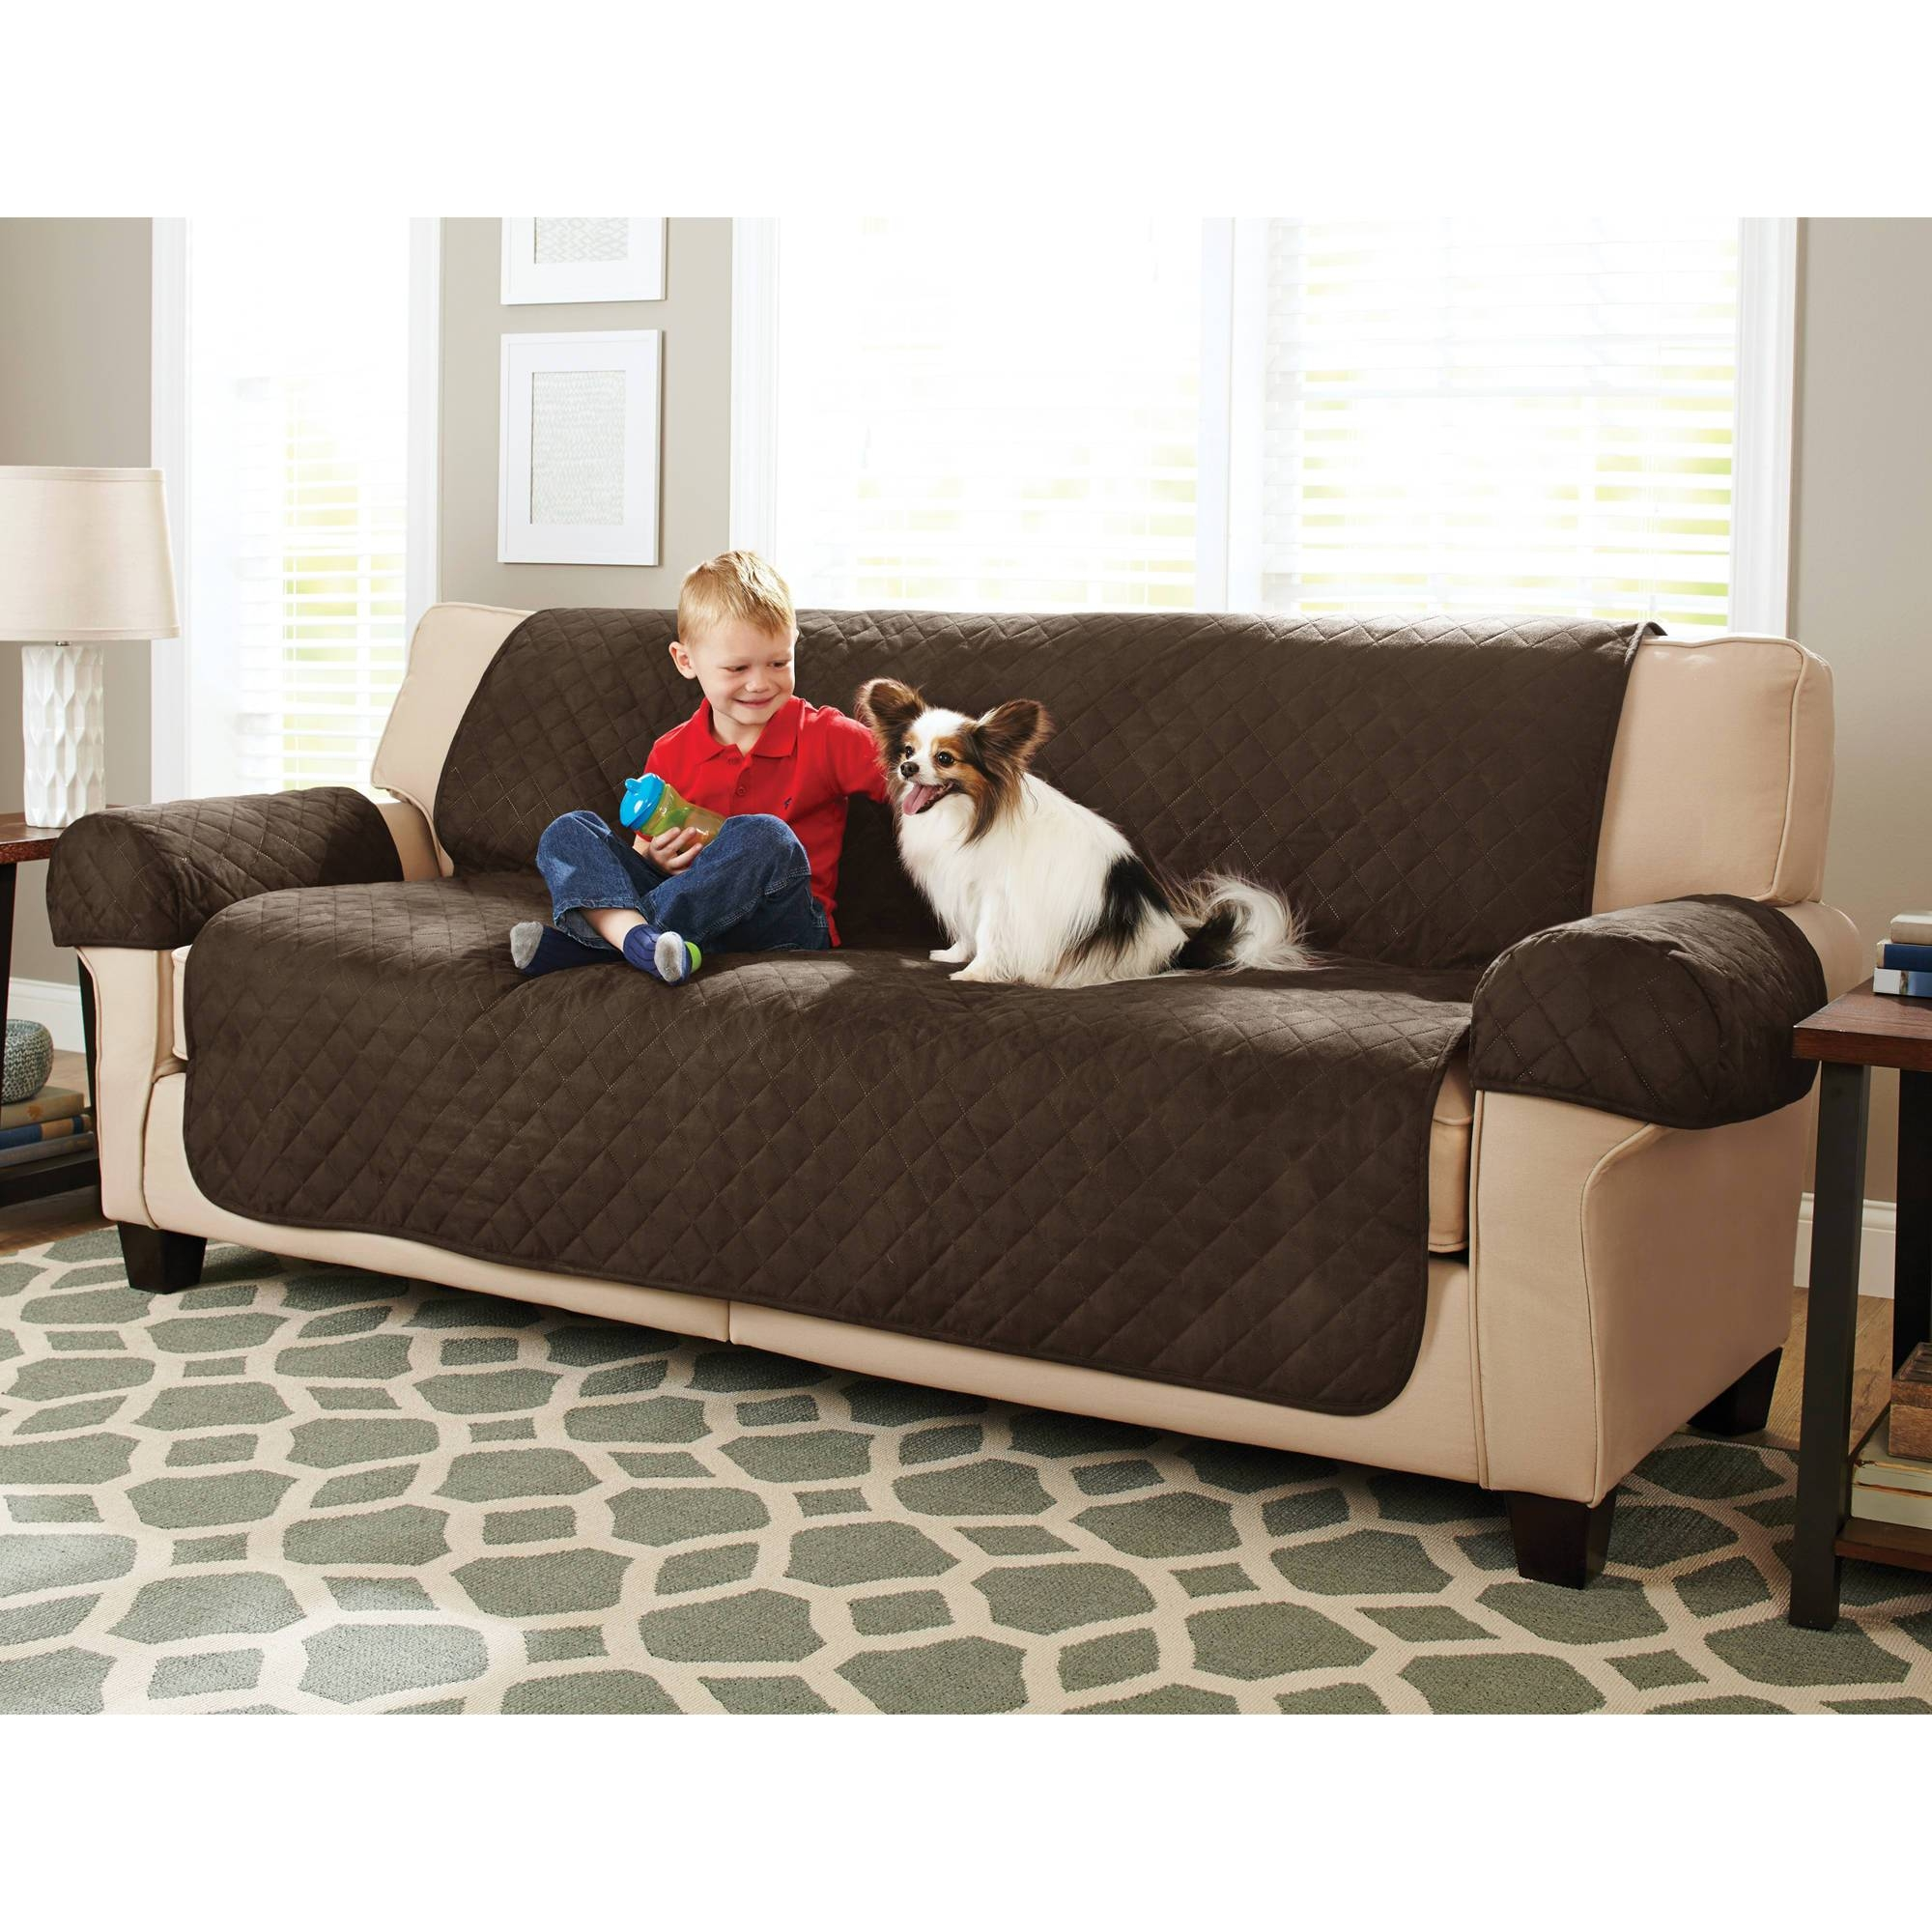 Maytex Stretch 2-Piece Sofa Slipcover - Walmart inside Slipcovers Sofas (Image 21 of 30)